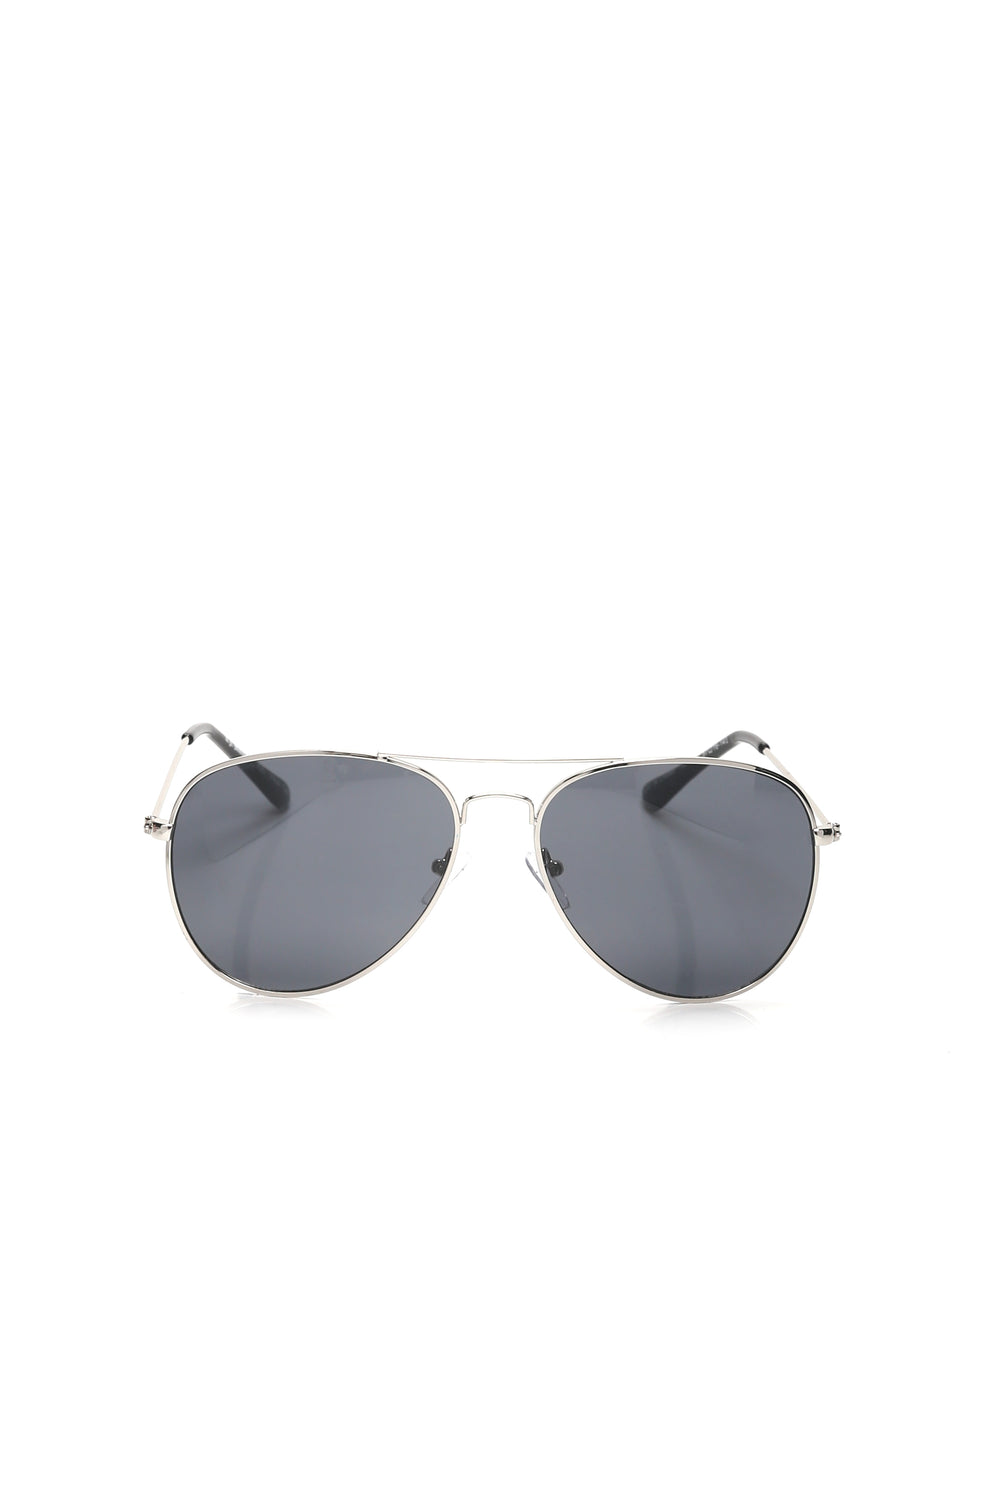 Day After Day Sunglasses - Silver